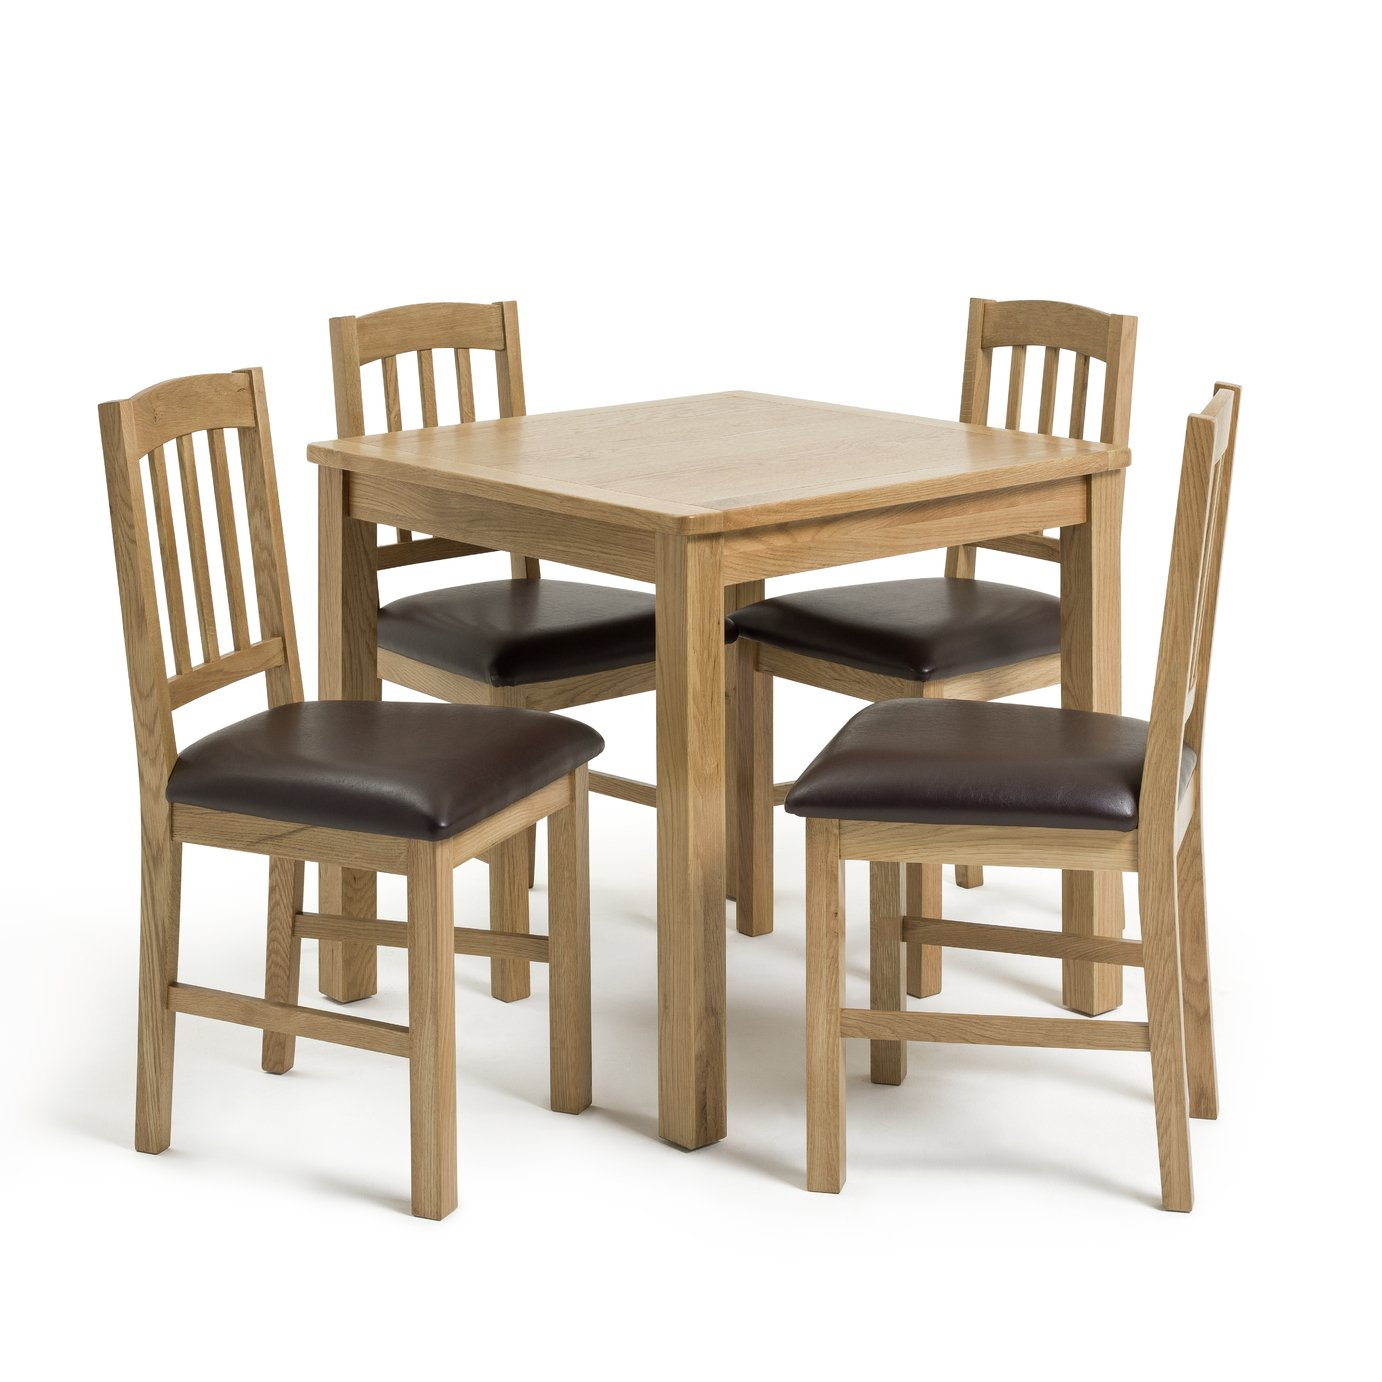 Argos Home Ashwell Oak Veneer Dining Table and 4 Chairs